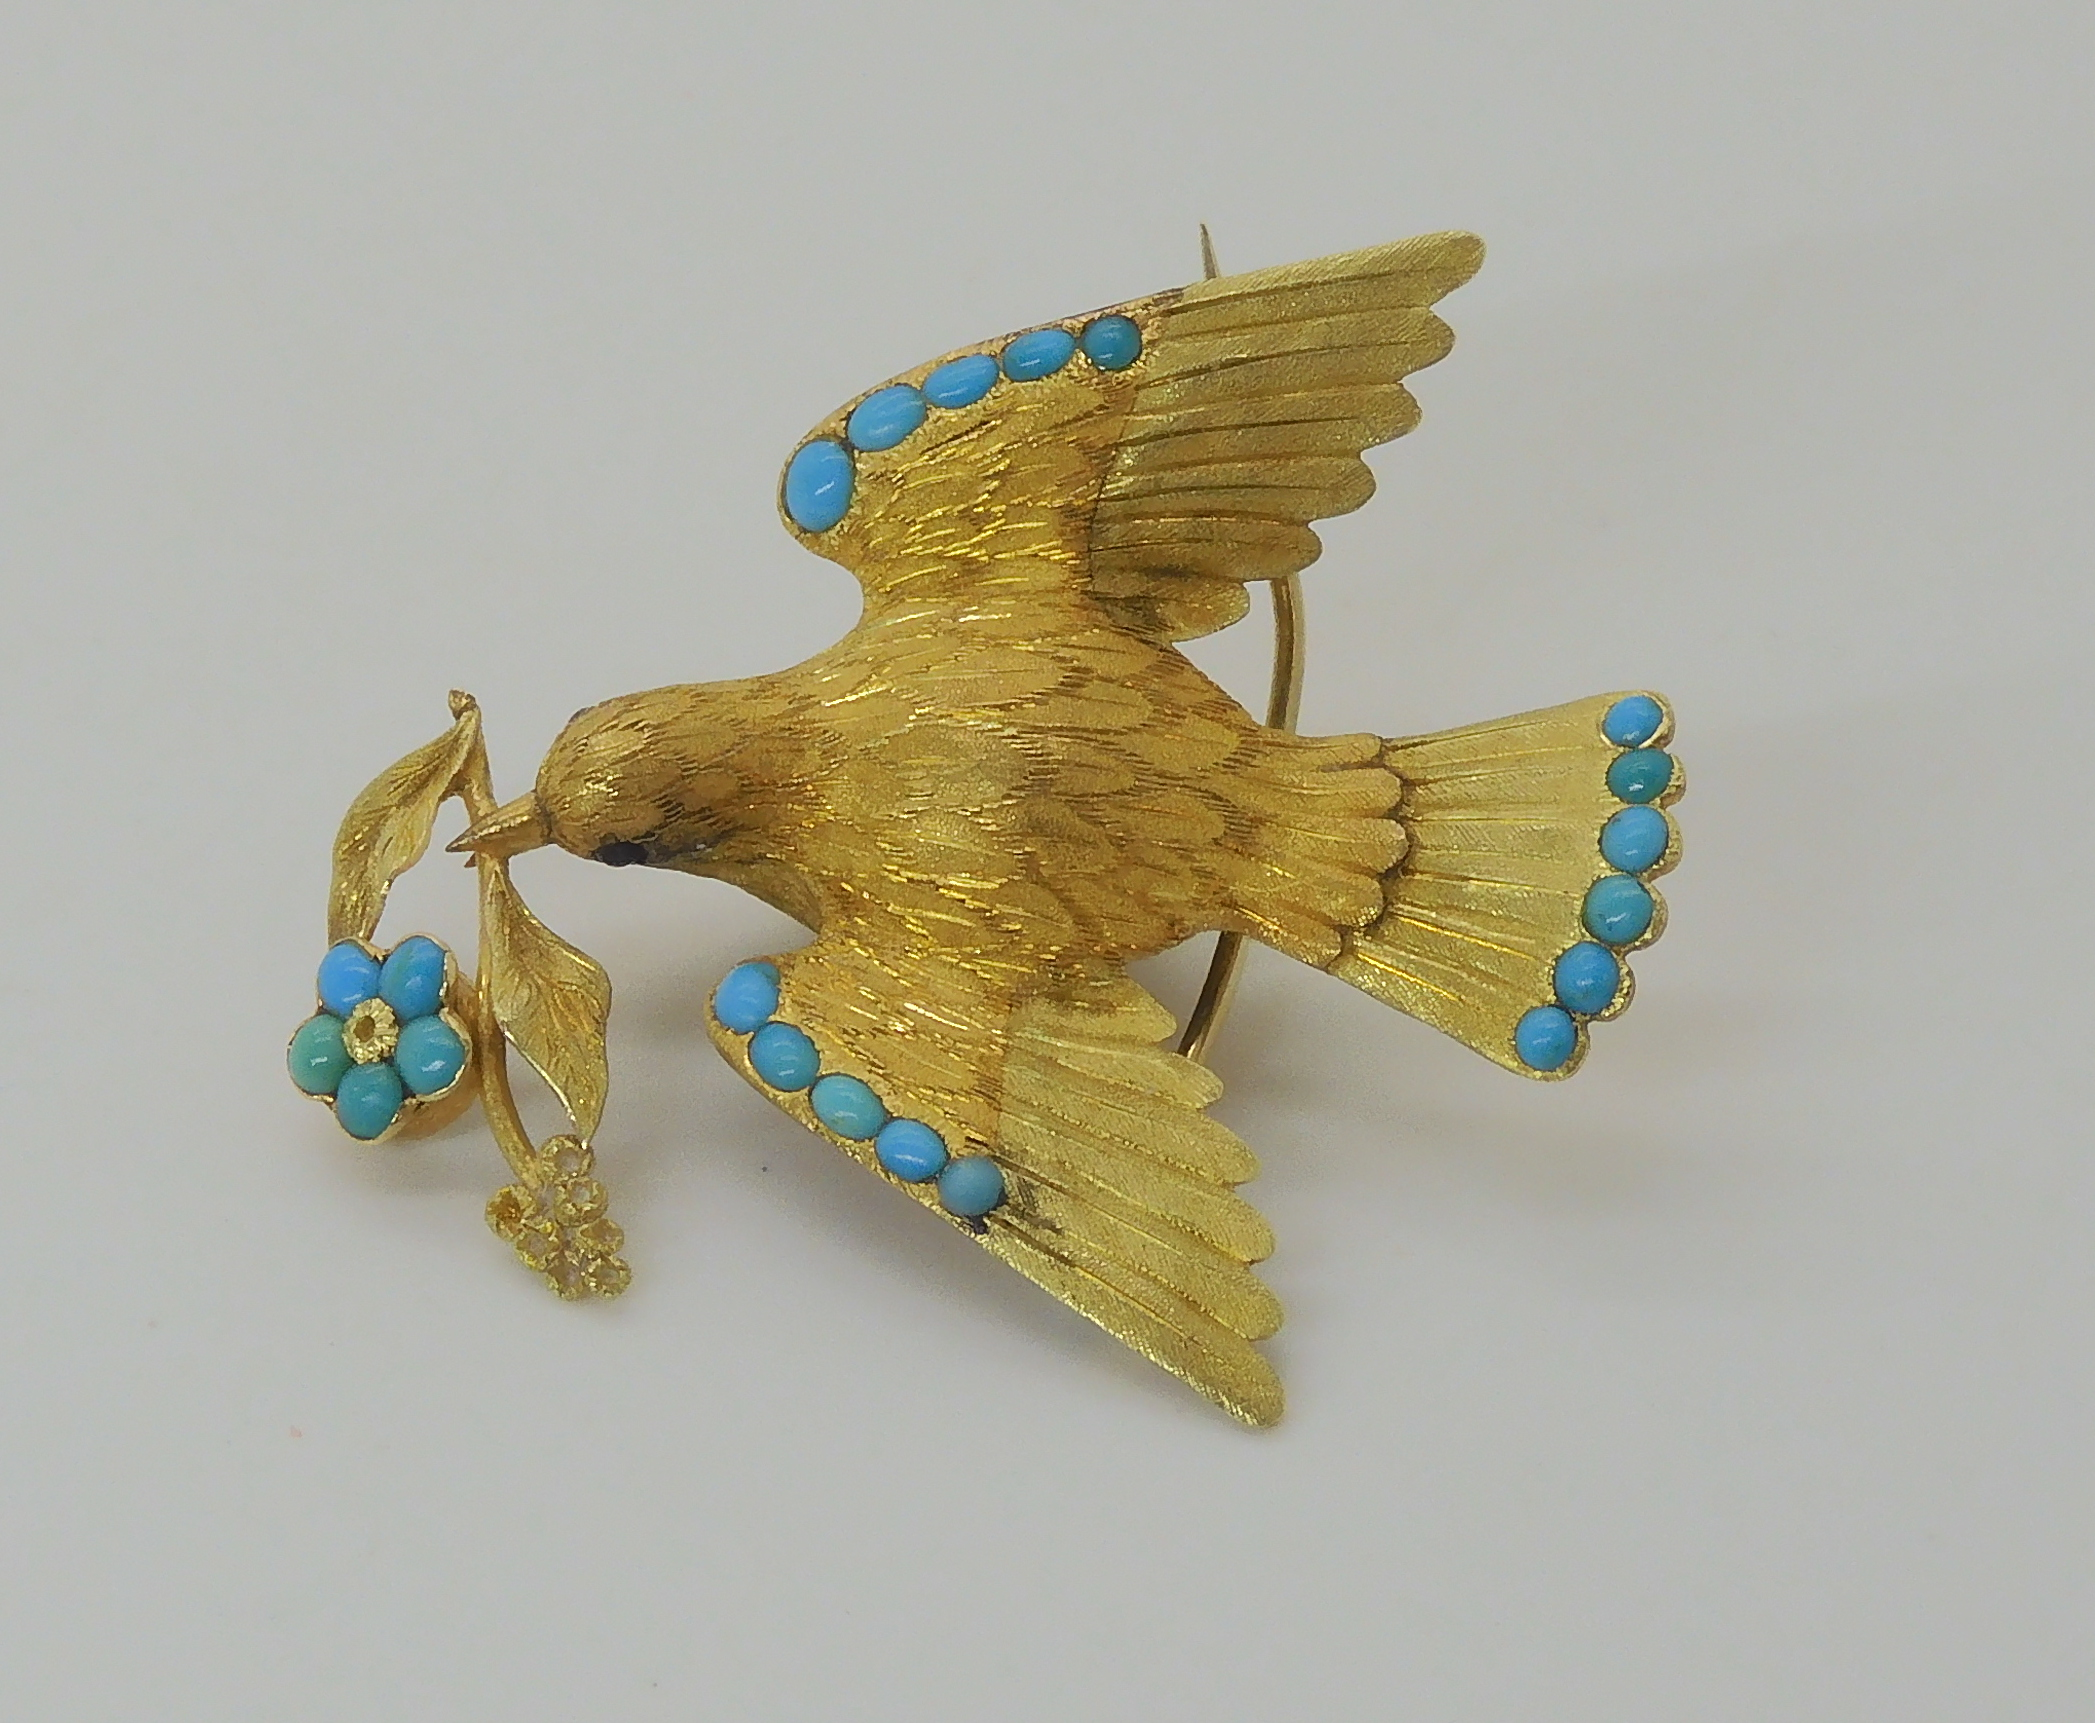 A VICTORIAN LOCKET BACK DOVE BROOCH SET WITH TURQUOISE craftsman made in yellow metal, with - Image 2 of 6